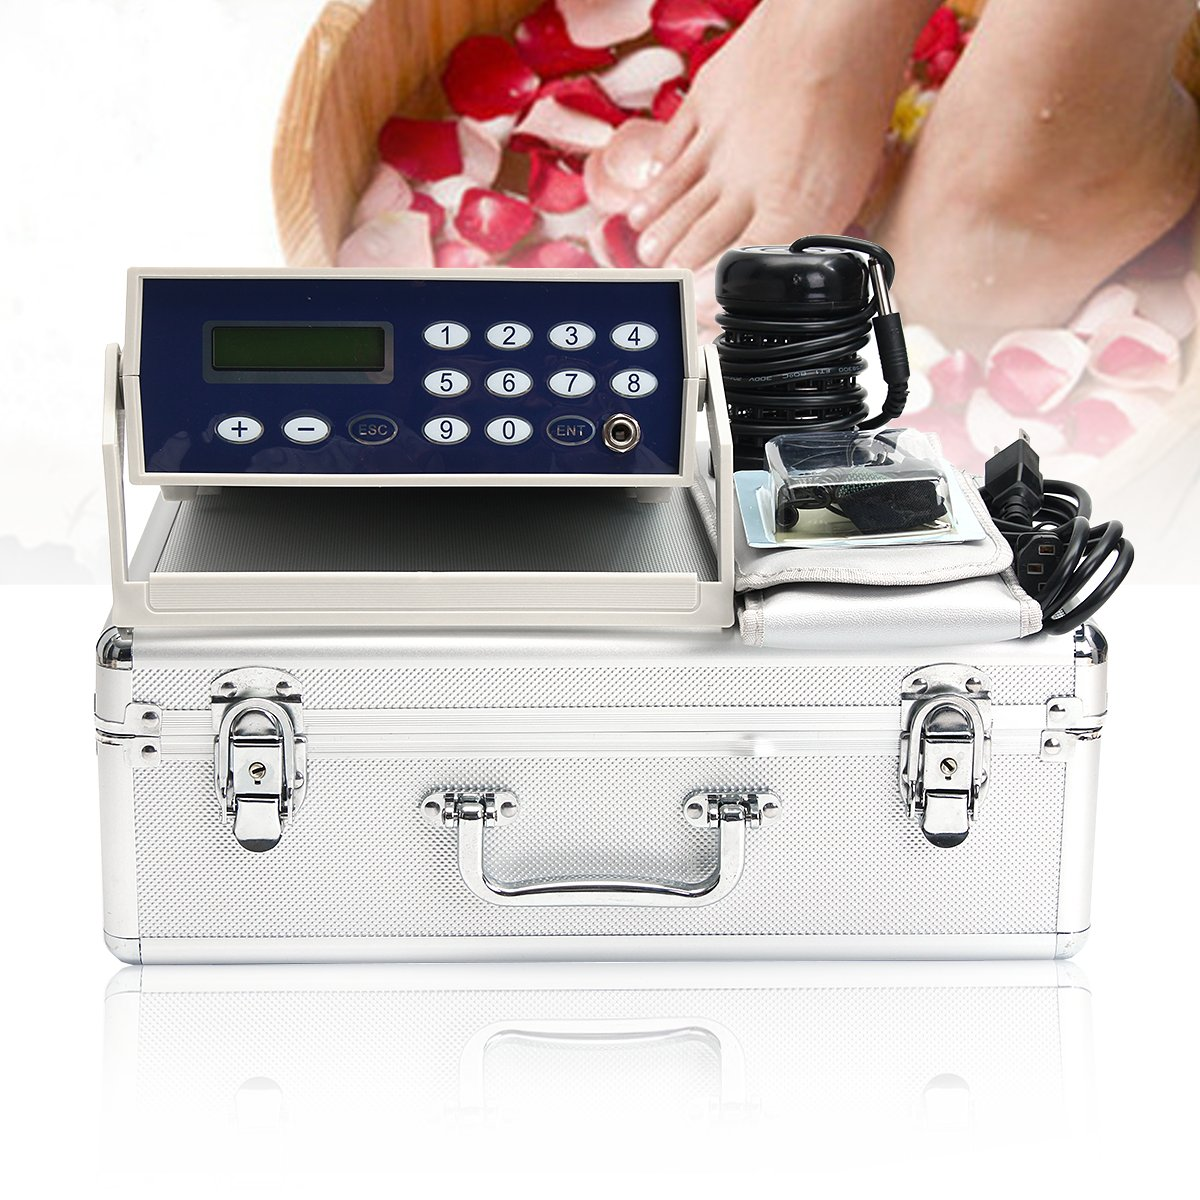 Detox foot care Machine Cell Ion Ionic Aqua Foot Bath SPA Cleanse Machine Fir Belt Box CAN foot bath massage pain relief machine electric antistress therapy rollers shiatsu kneading foot legs arms massager vibrator foot massage machine foot care device hot